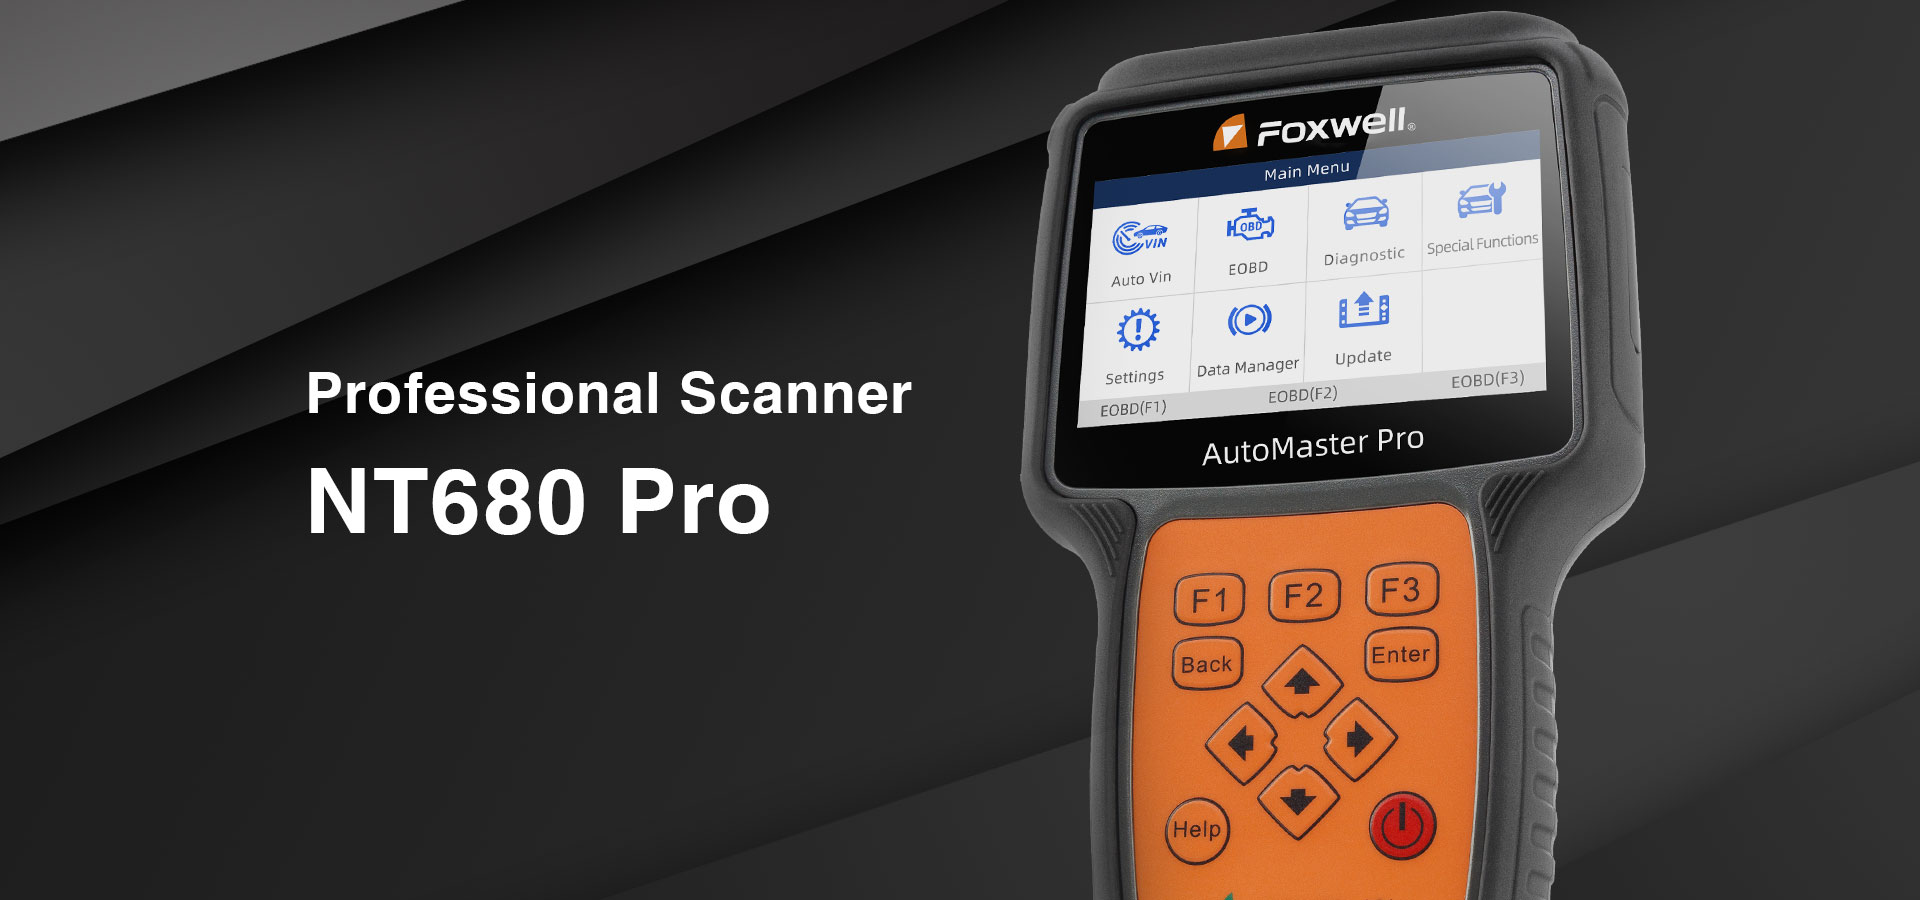 Foxwell Released A Professional  Scanner NT680 Pro